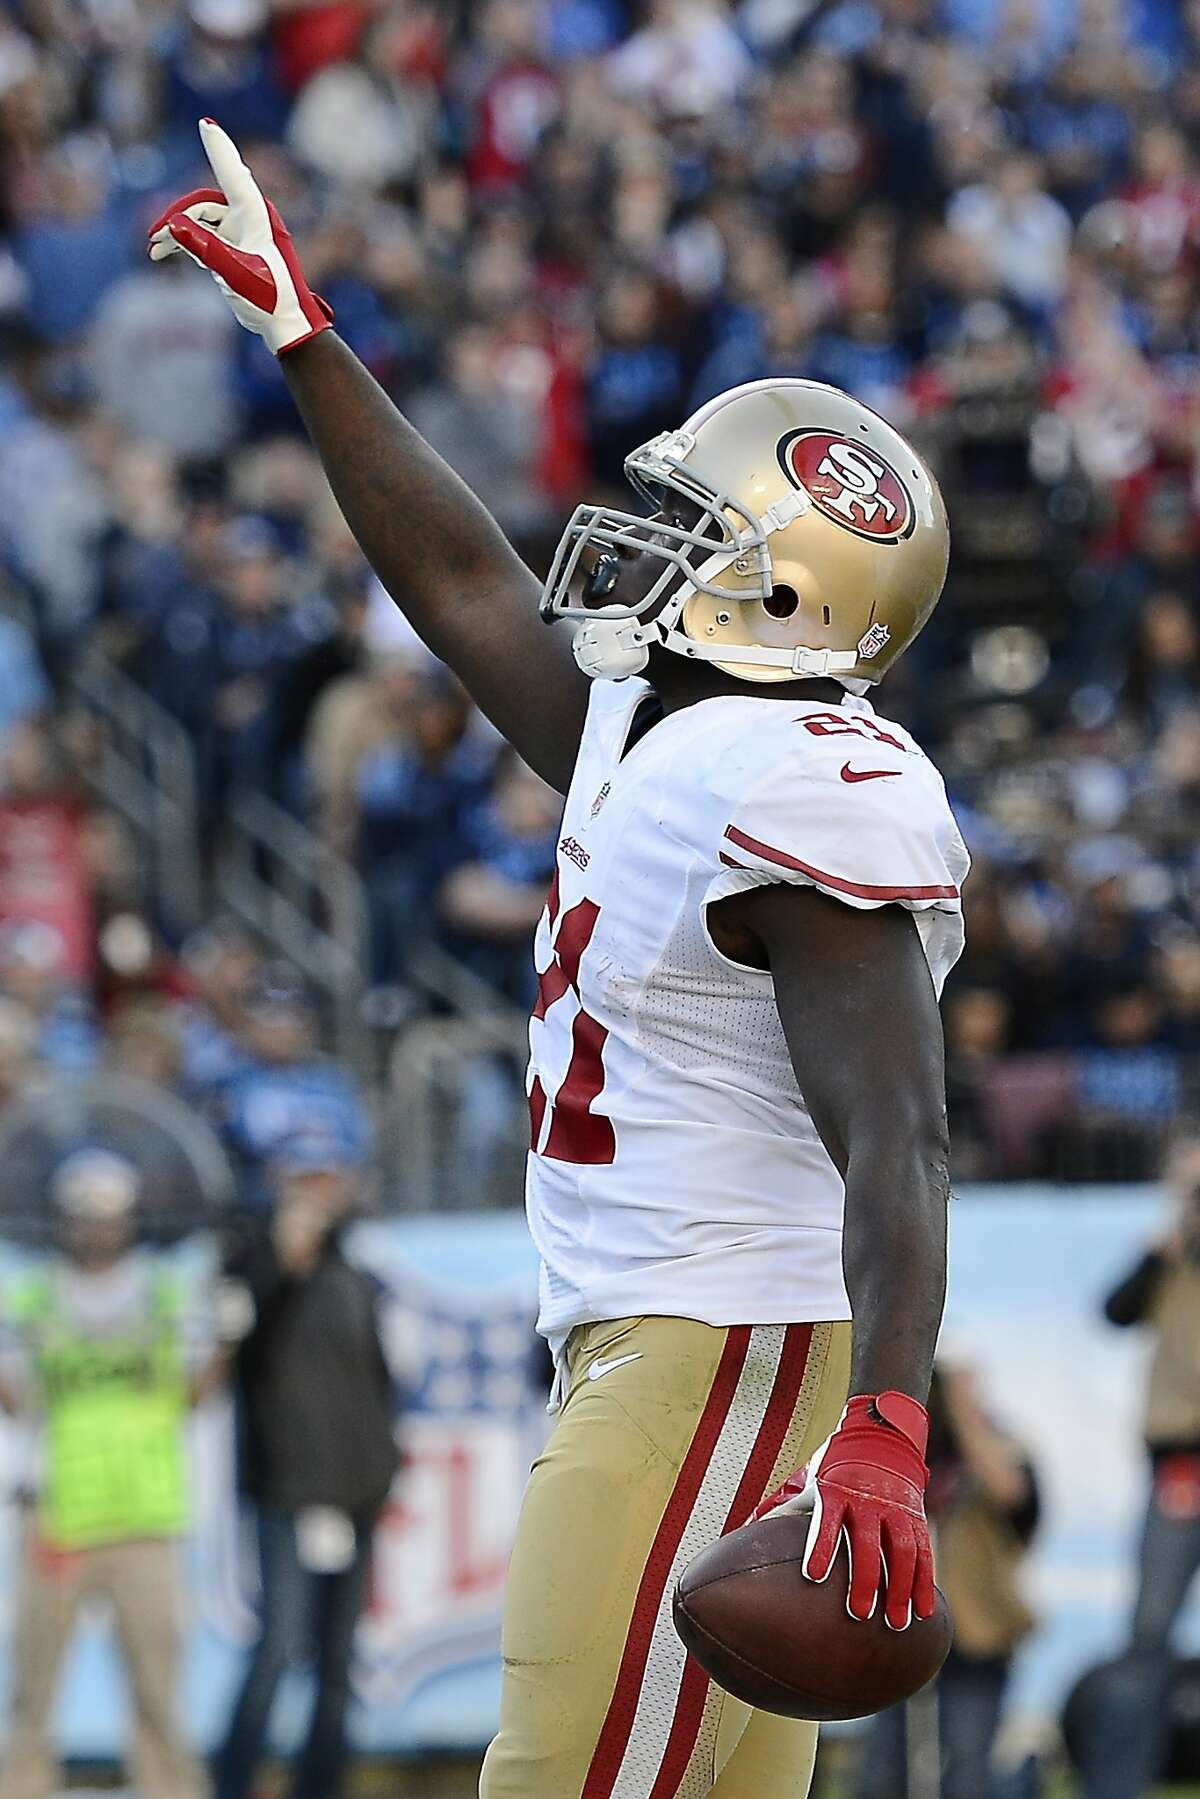 San Francisco 49ers running back Frank Gore celebrates after scoring a touchdown on a 1-yard run against the Tennessee Titans in the second quarter of an NFL football game on Sunday, Oct. 20, 2013, in Nashville, Tenn. (AP Photo/Mark Zaleski)